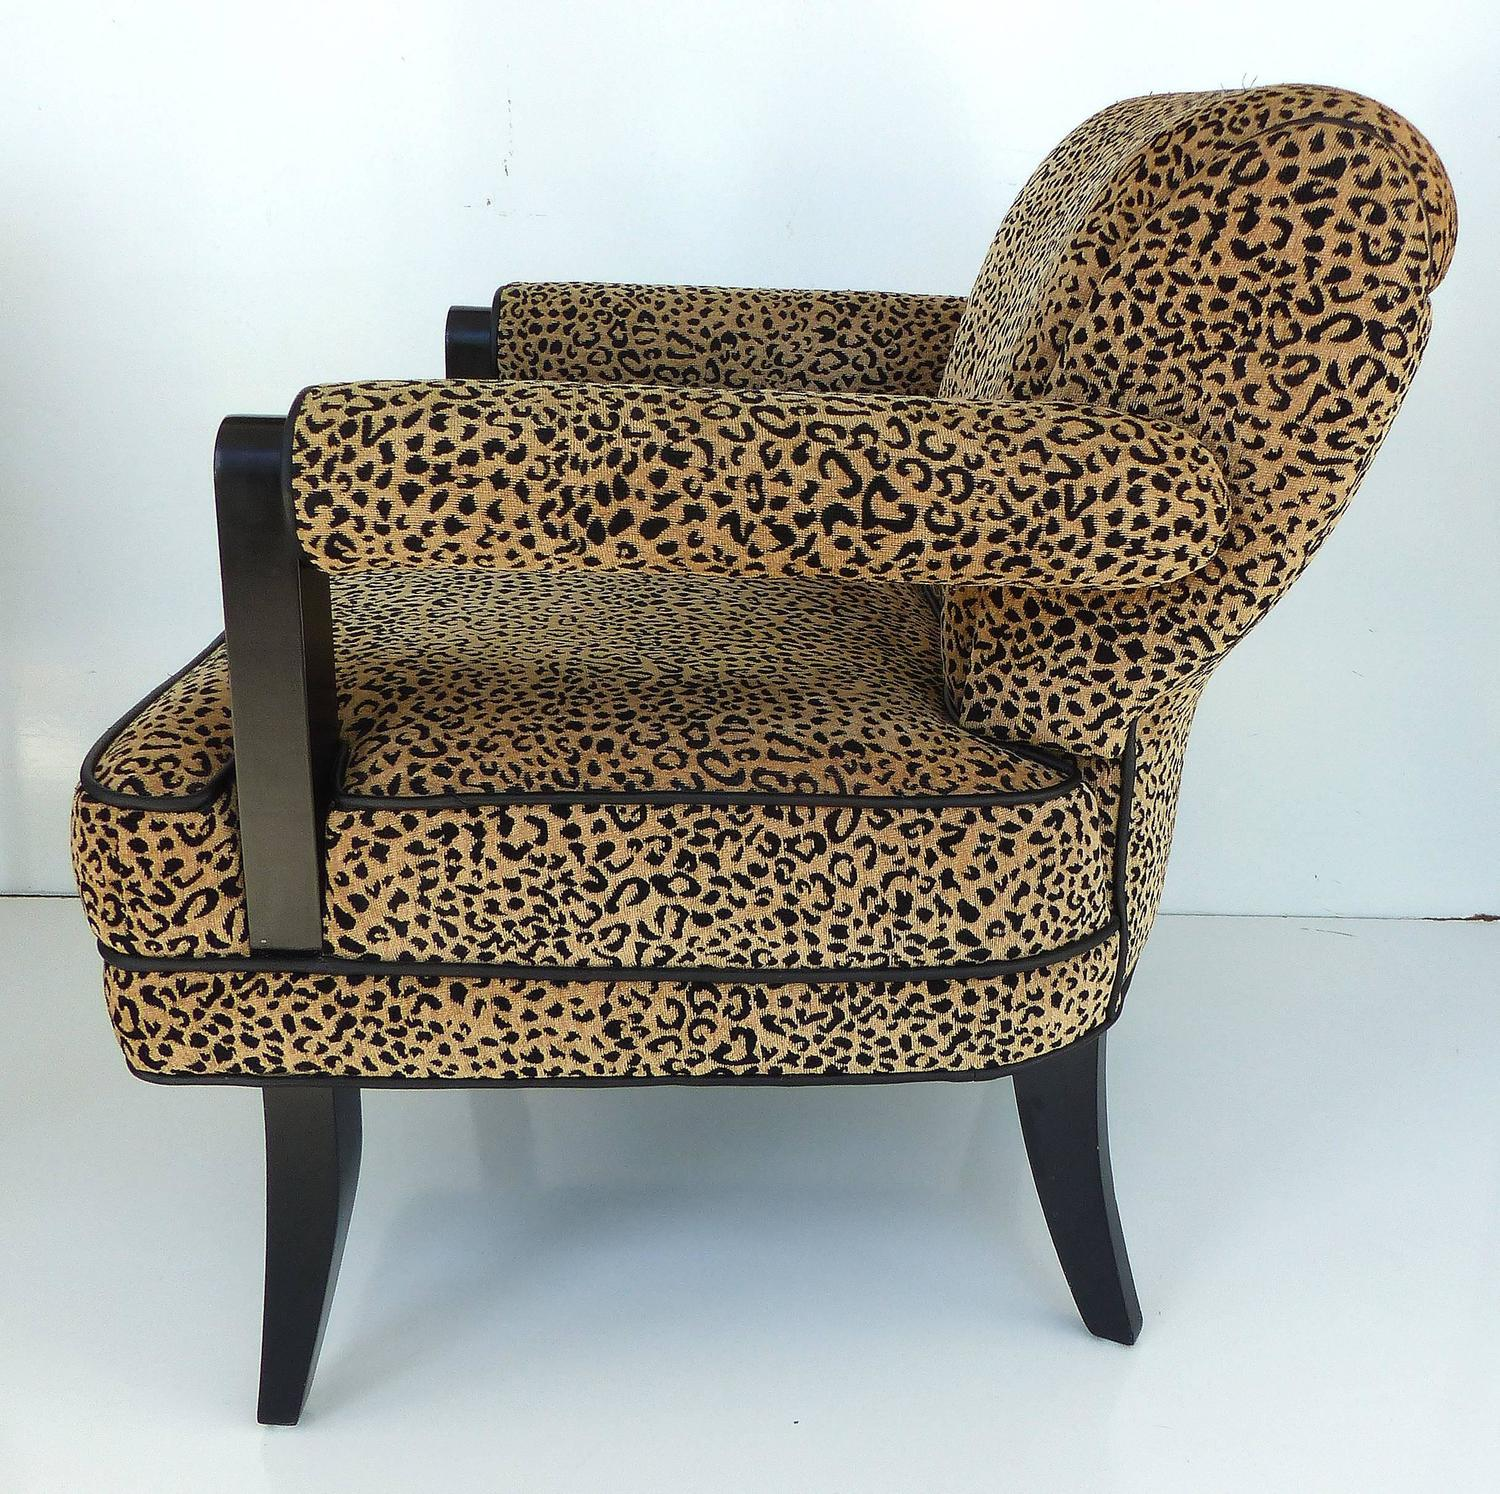 Larry Lazslo For Directional Pair Of Velvet Leopard Print Club Chairs For Sale At 1stdibs